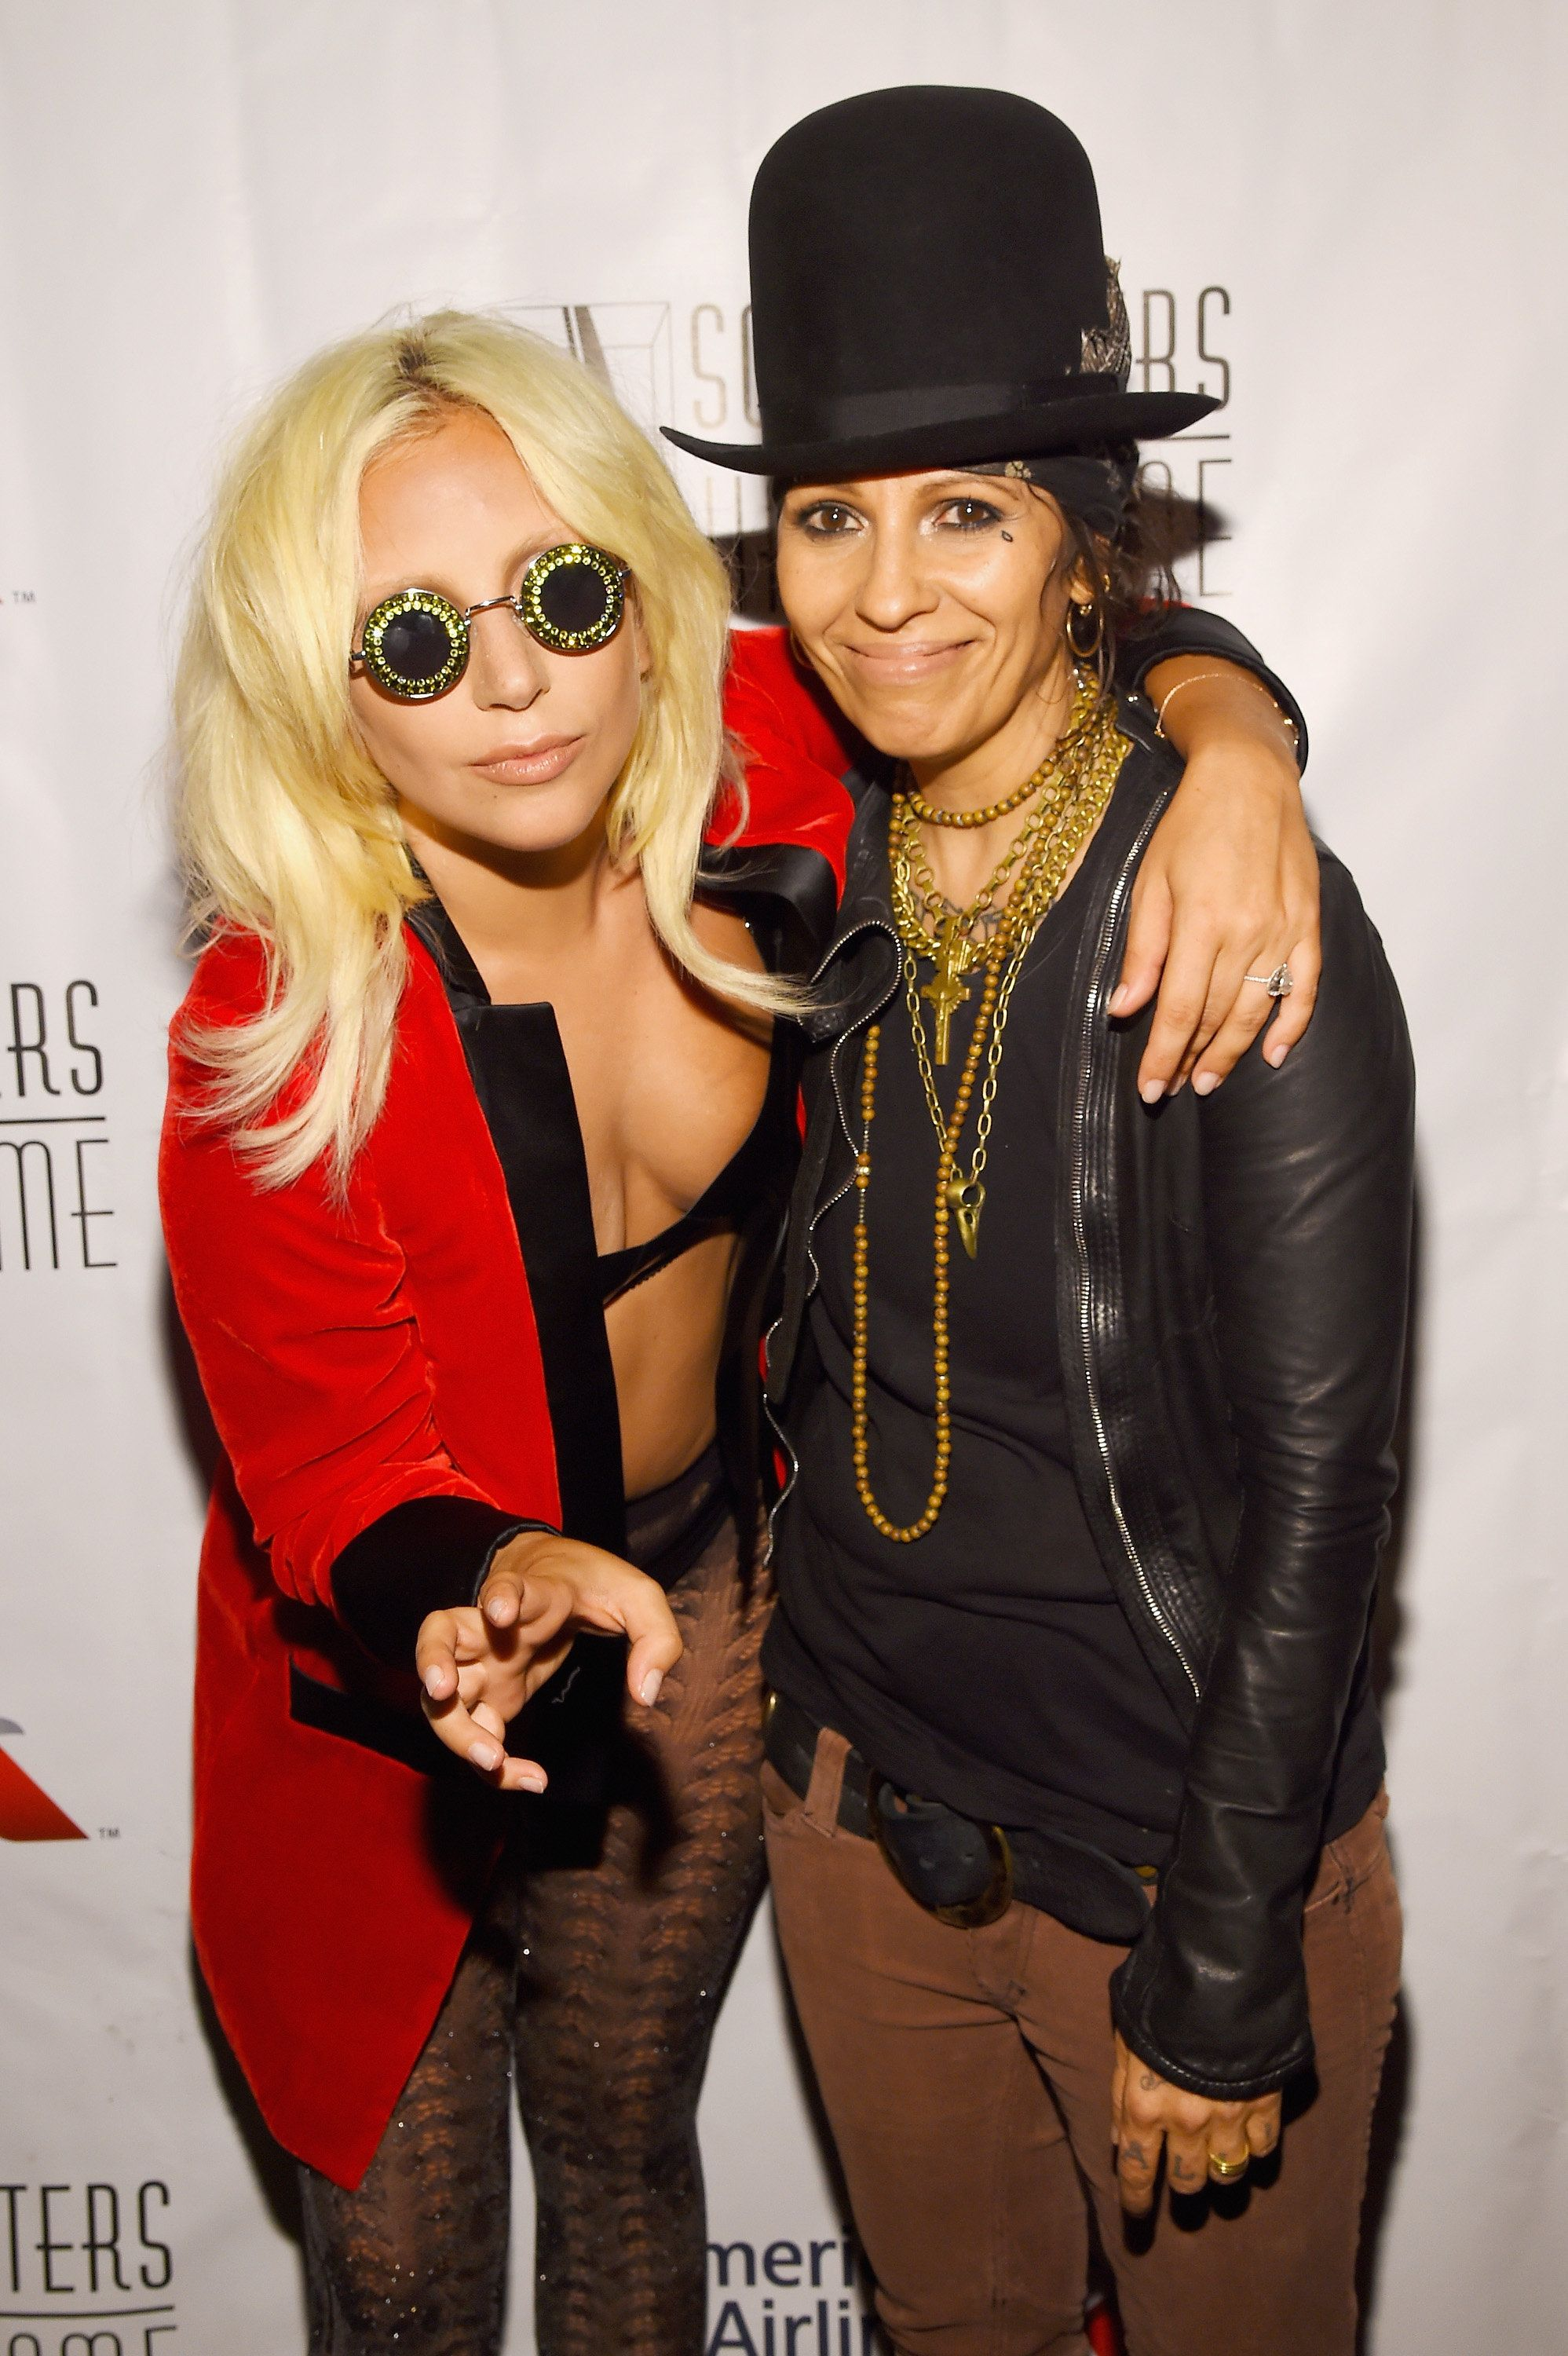 NEW YORK, NY - JUNE 18:  Contemporary Icon Award Recipient Lady Gaga and Inductee Linda Perry pose backstage at the Songwriters Hall Of Fame 46th Annual Induction And Awards at Marriott Marquis Hotel on June 18, 2015 in New York City.  (Photo by Larry Busacca/Getty Images for Songwriters Hall Of Fame)